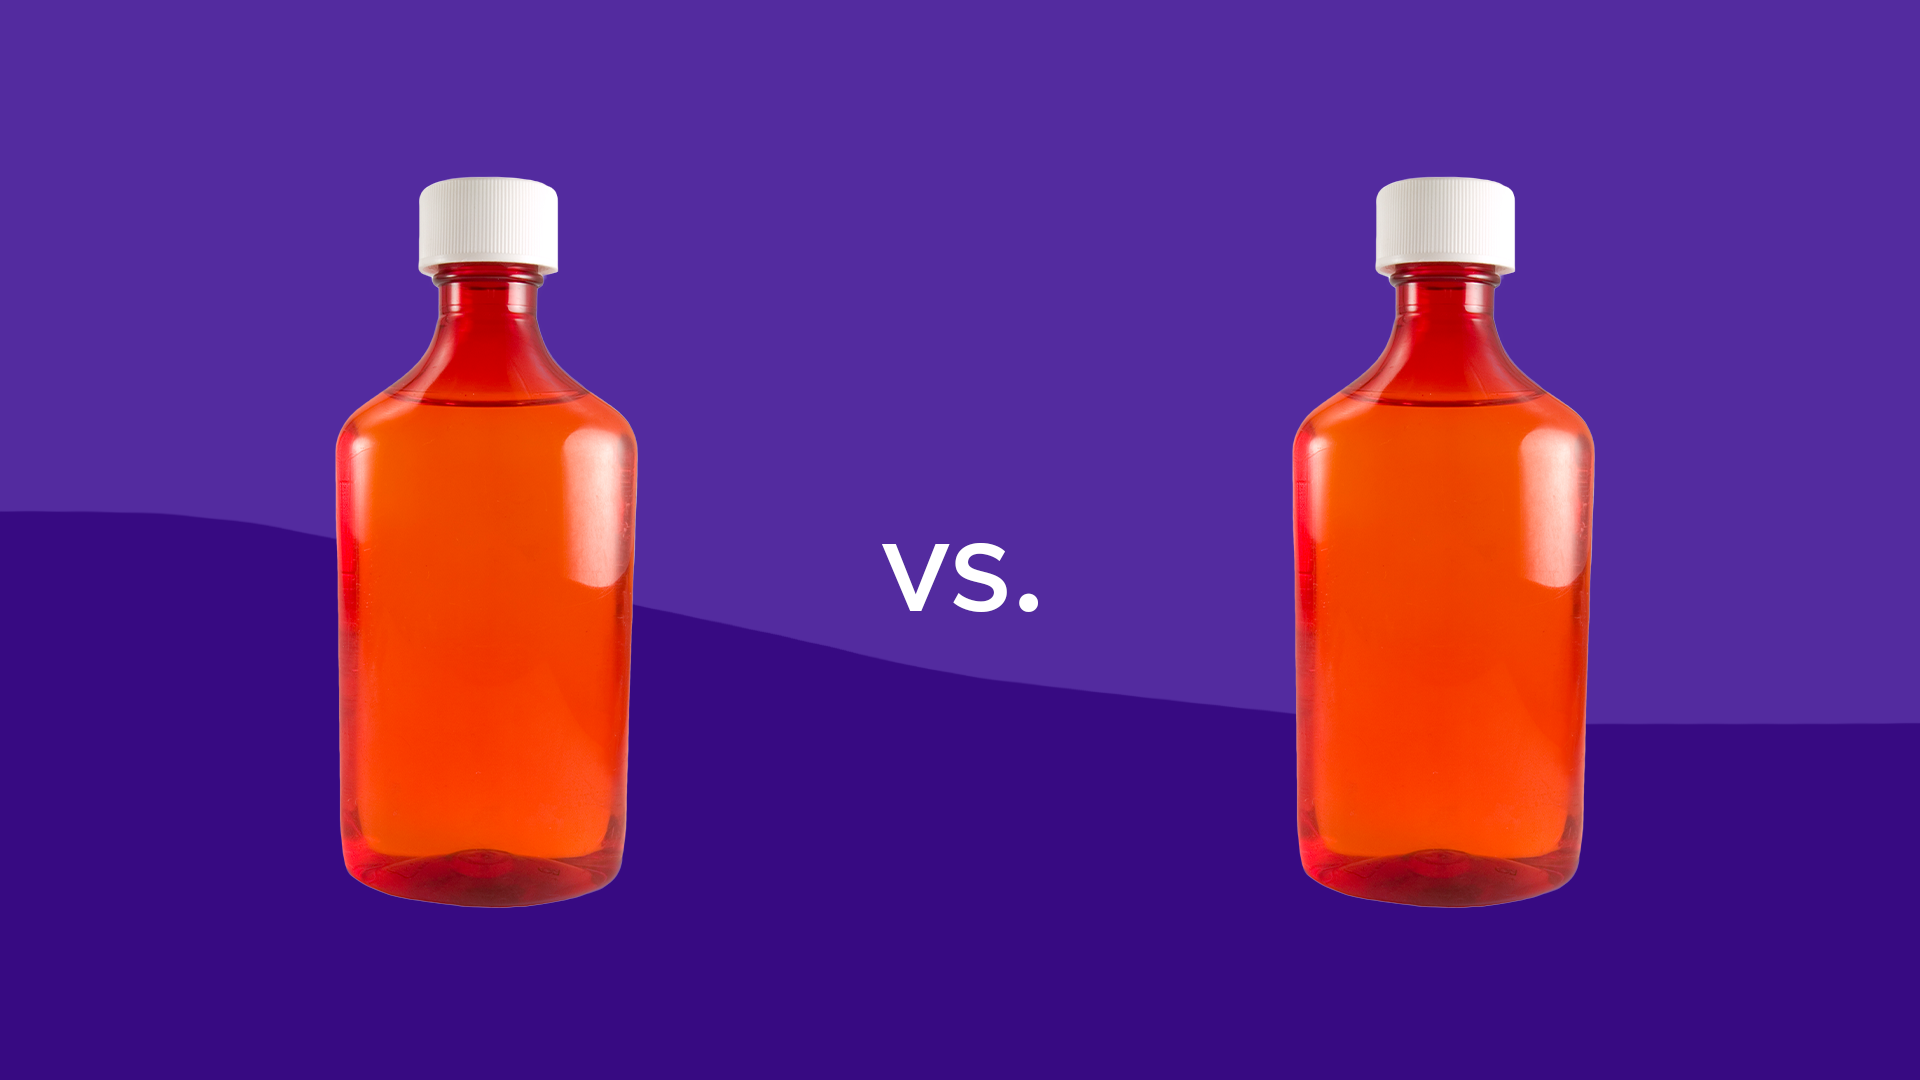 Delsym vs. Robitussin: Differences, similarities, and which is better for you